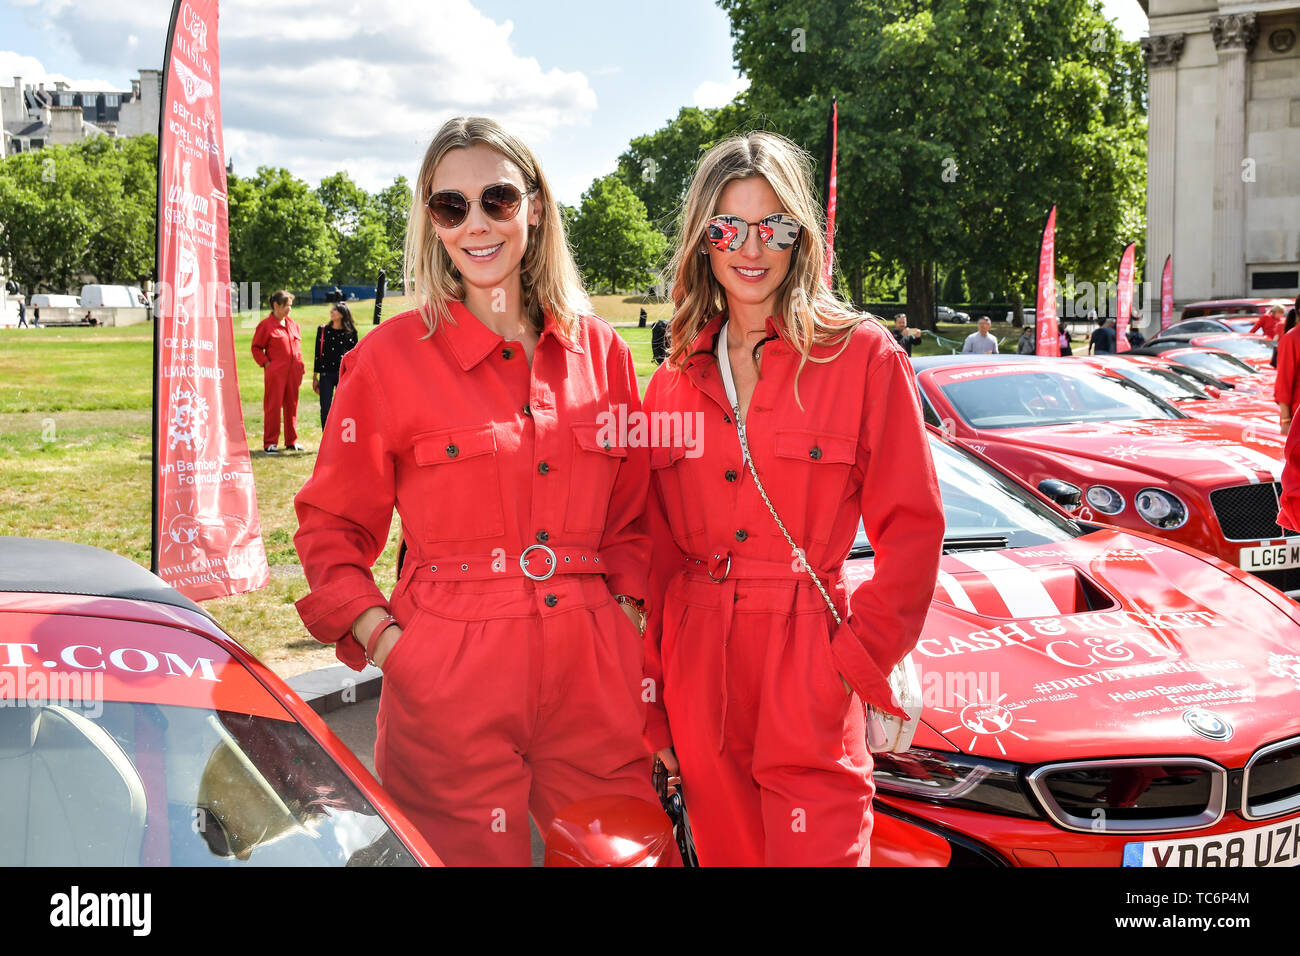 London, UK. 06th June, 2019. Celebs attend Cash & Rocket Photocall at Wellington Arch, on 6 June 2019, London, UK Credit: Picture Capital/Alamy Live News - Stock Image